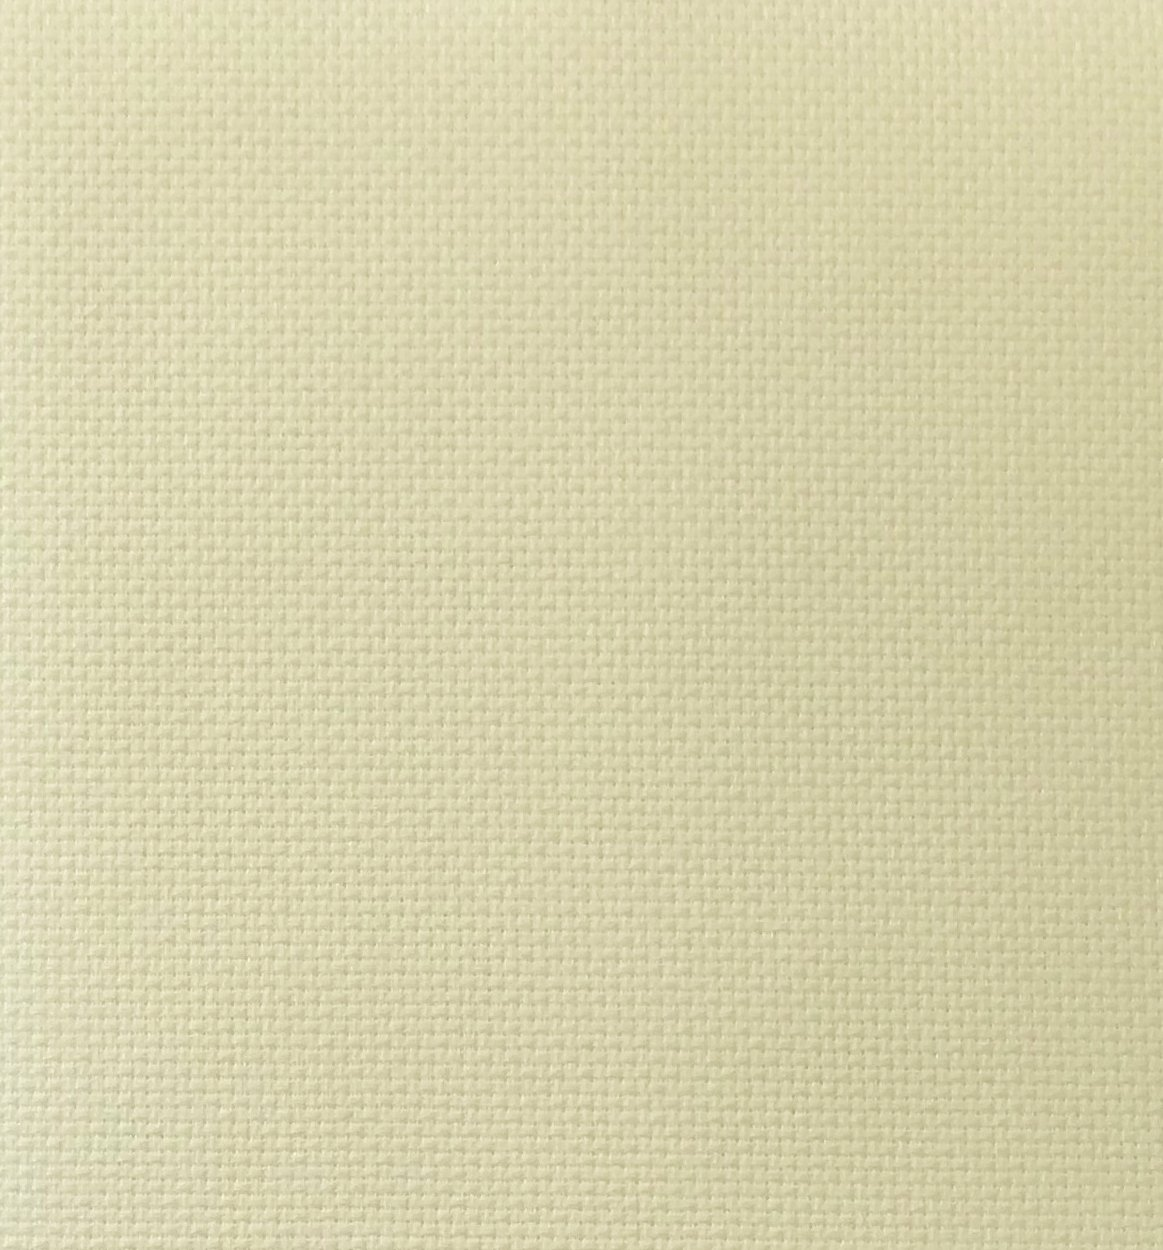 Aida Fabric 14 CT, 60 - Ivory